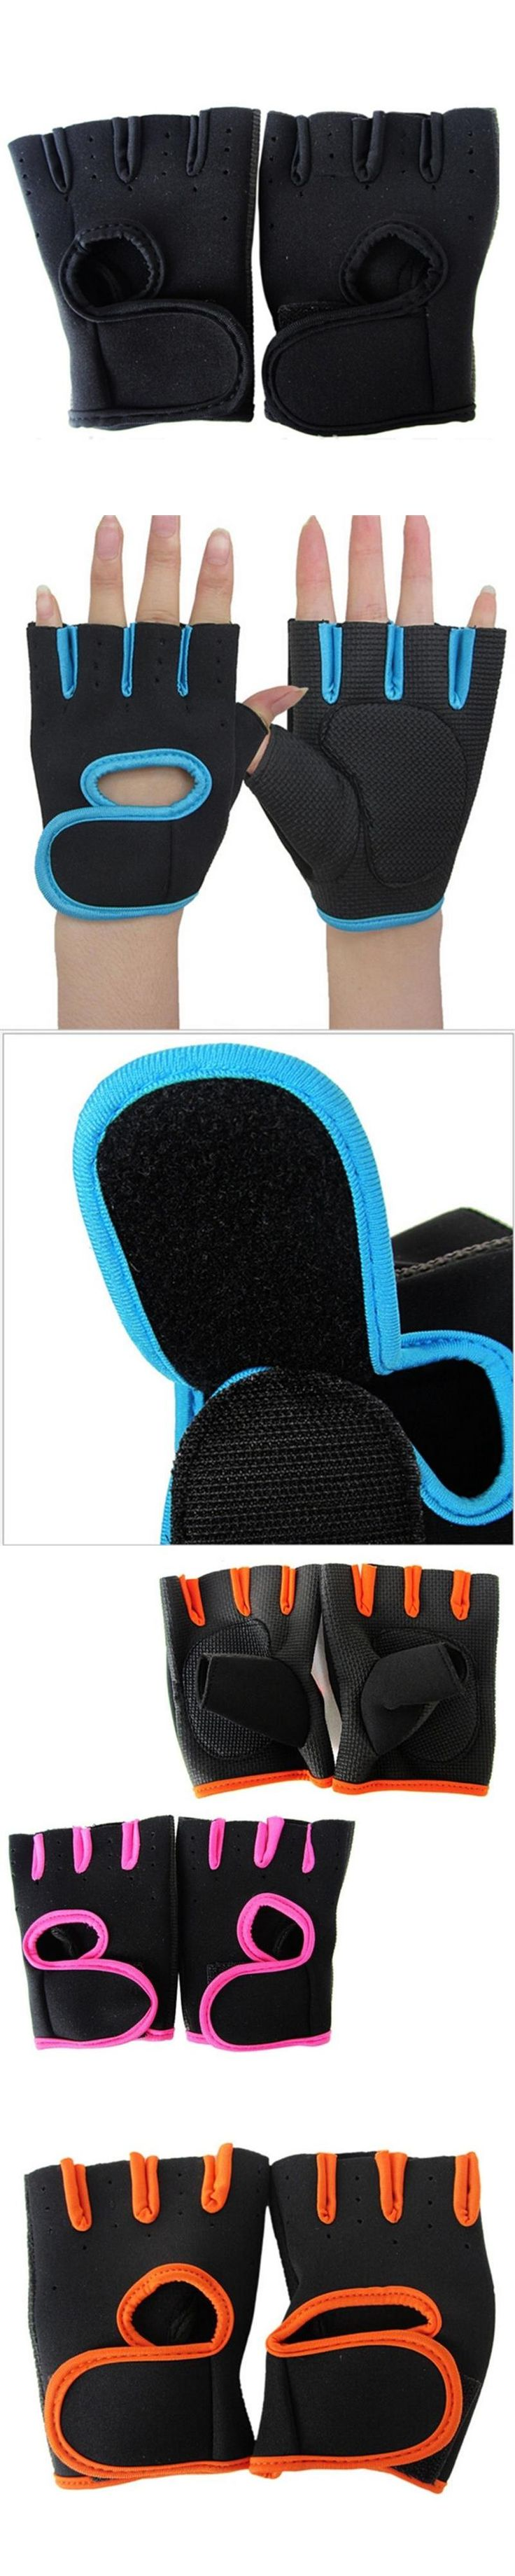 New Men Women's Fitness Exercise Workout Weight Lifting  Gloves   Glove